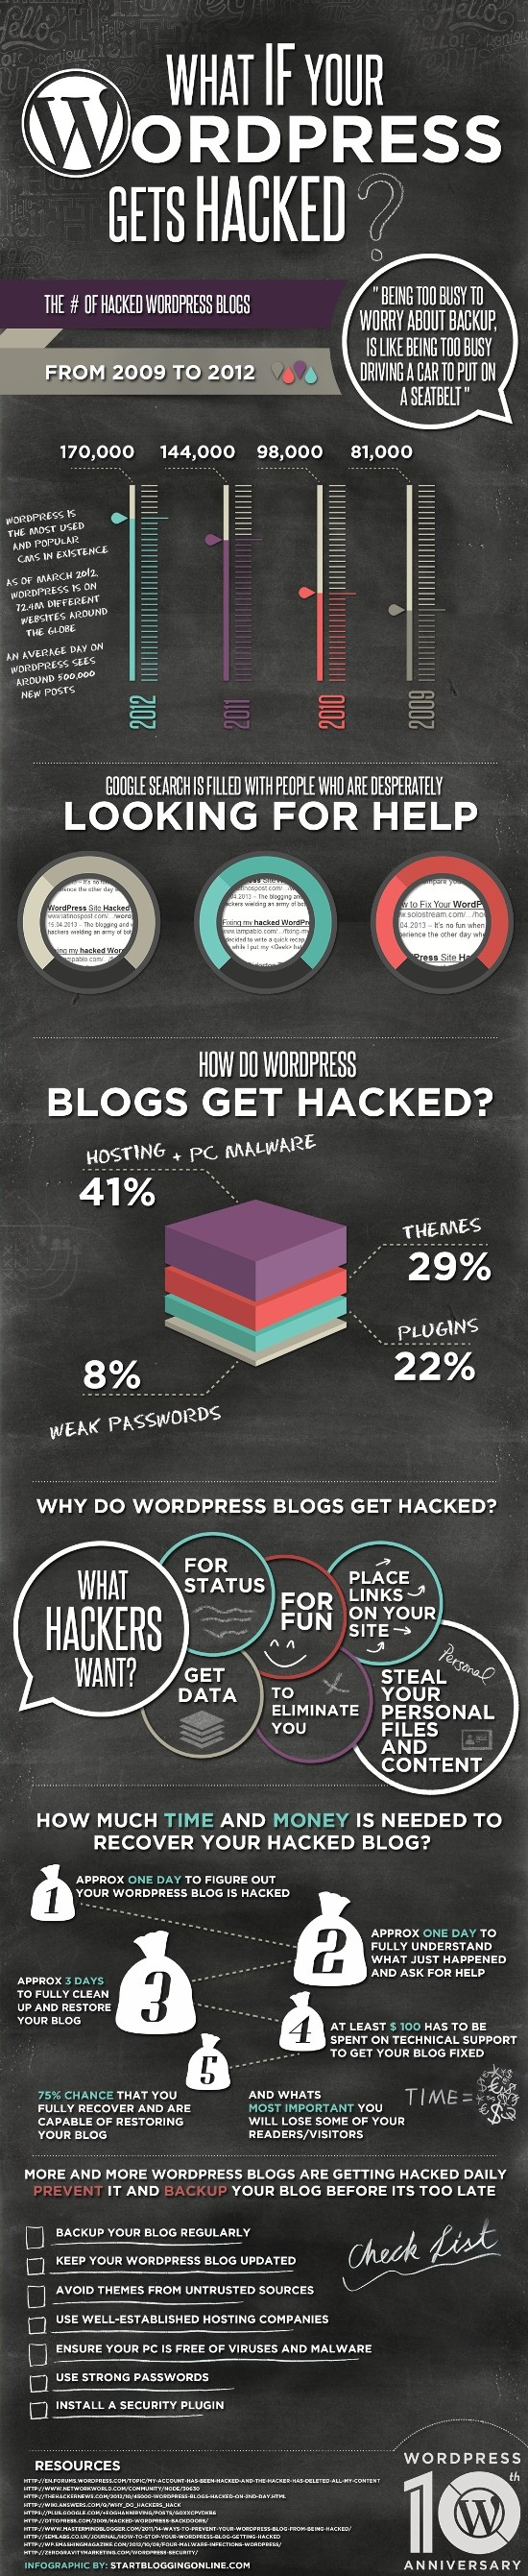 WordPress Hacked Infographic